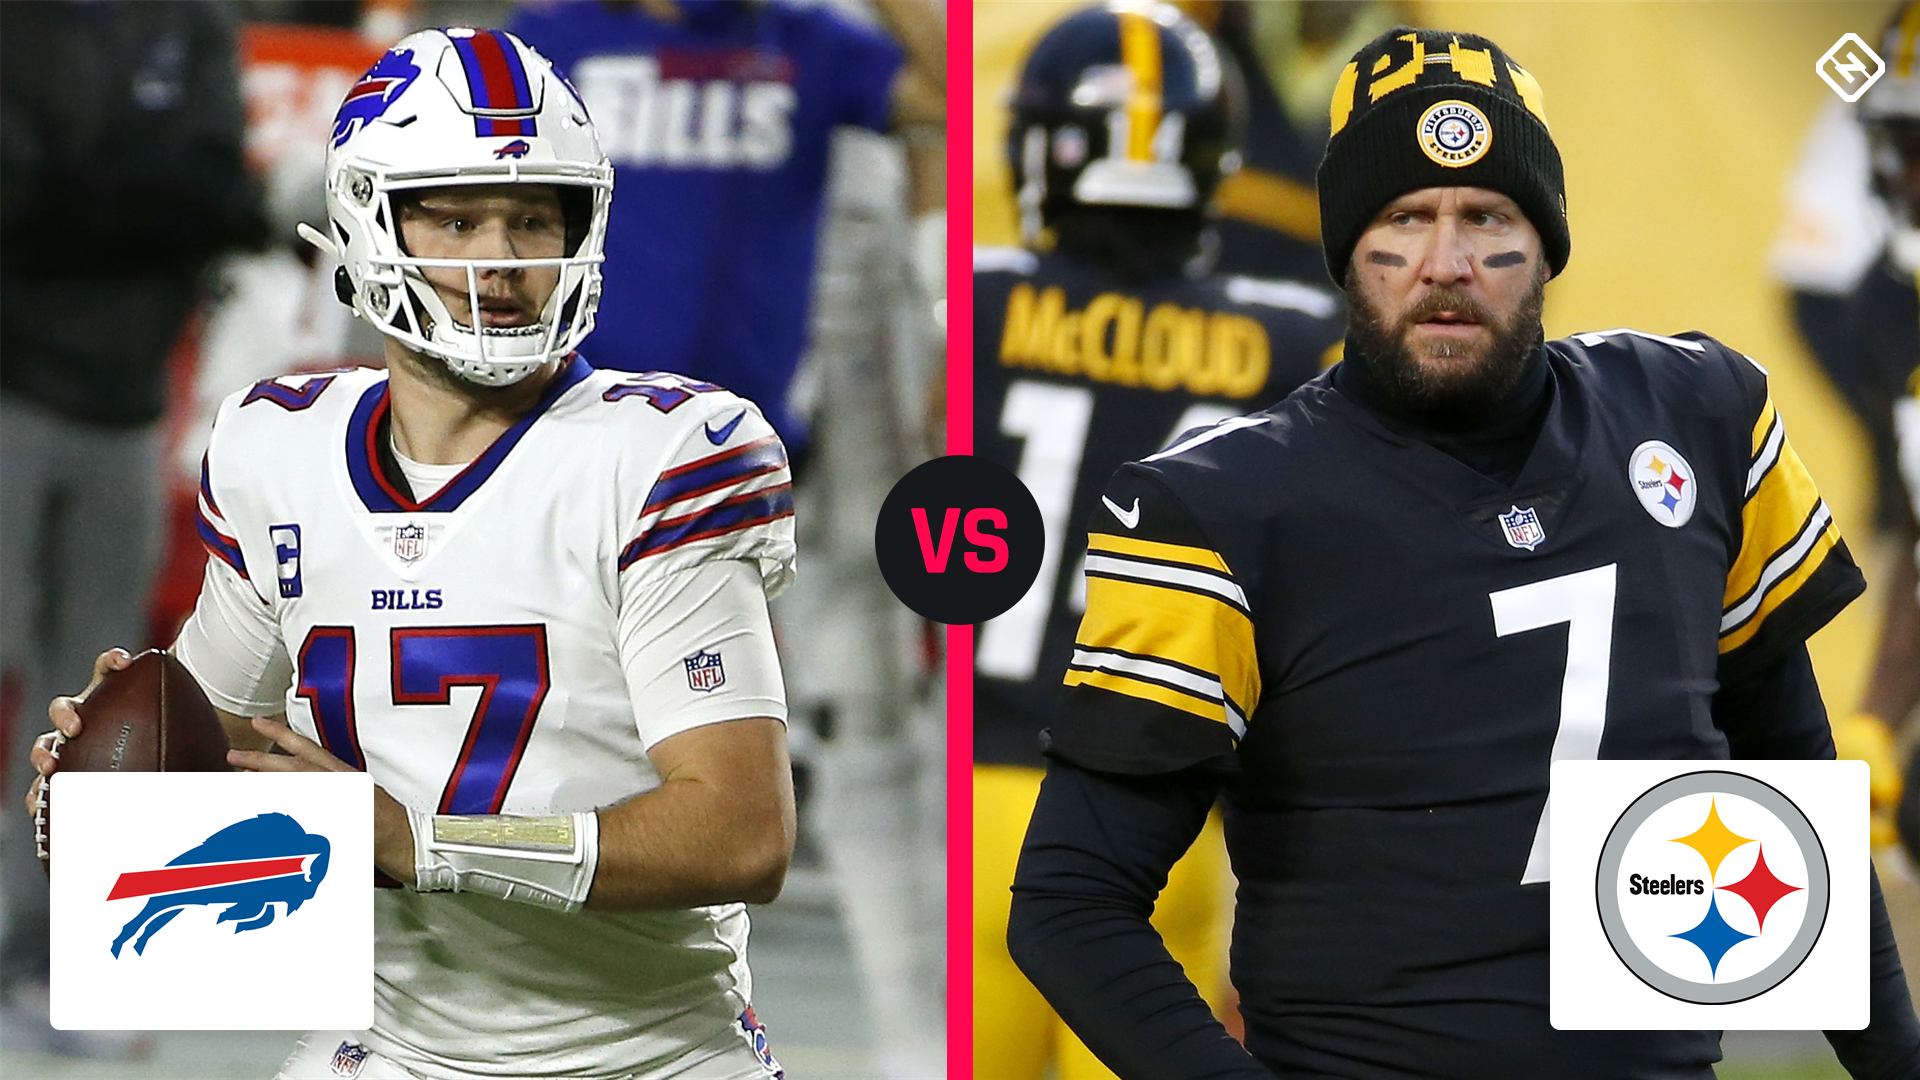 Steelers vs. Bills odds, prediction, betting trends for NFL's 'Sunday Night Football' game